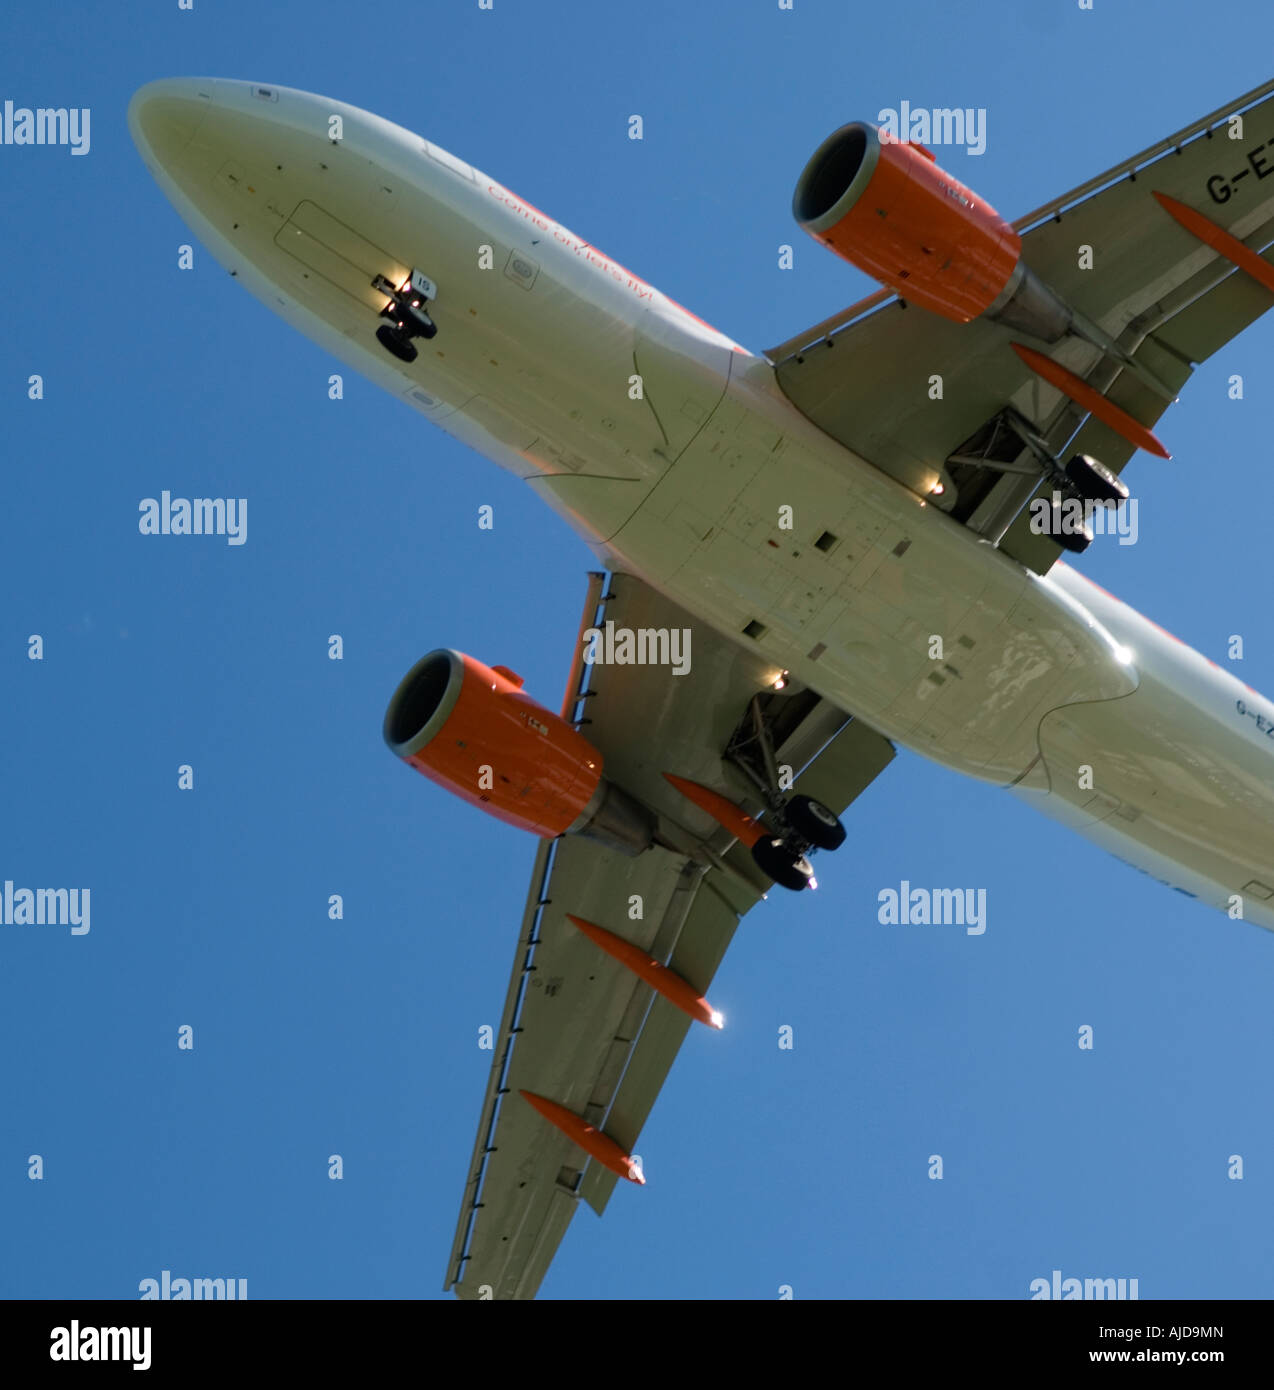 Commercial airliner preparing to land - Stock Image